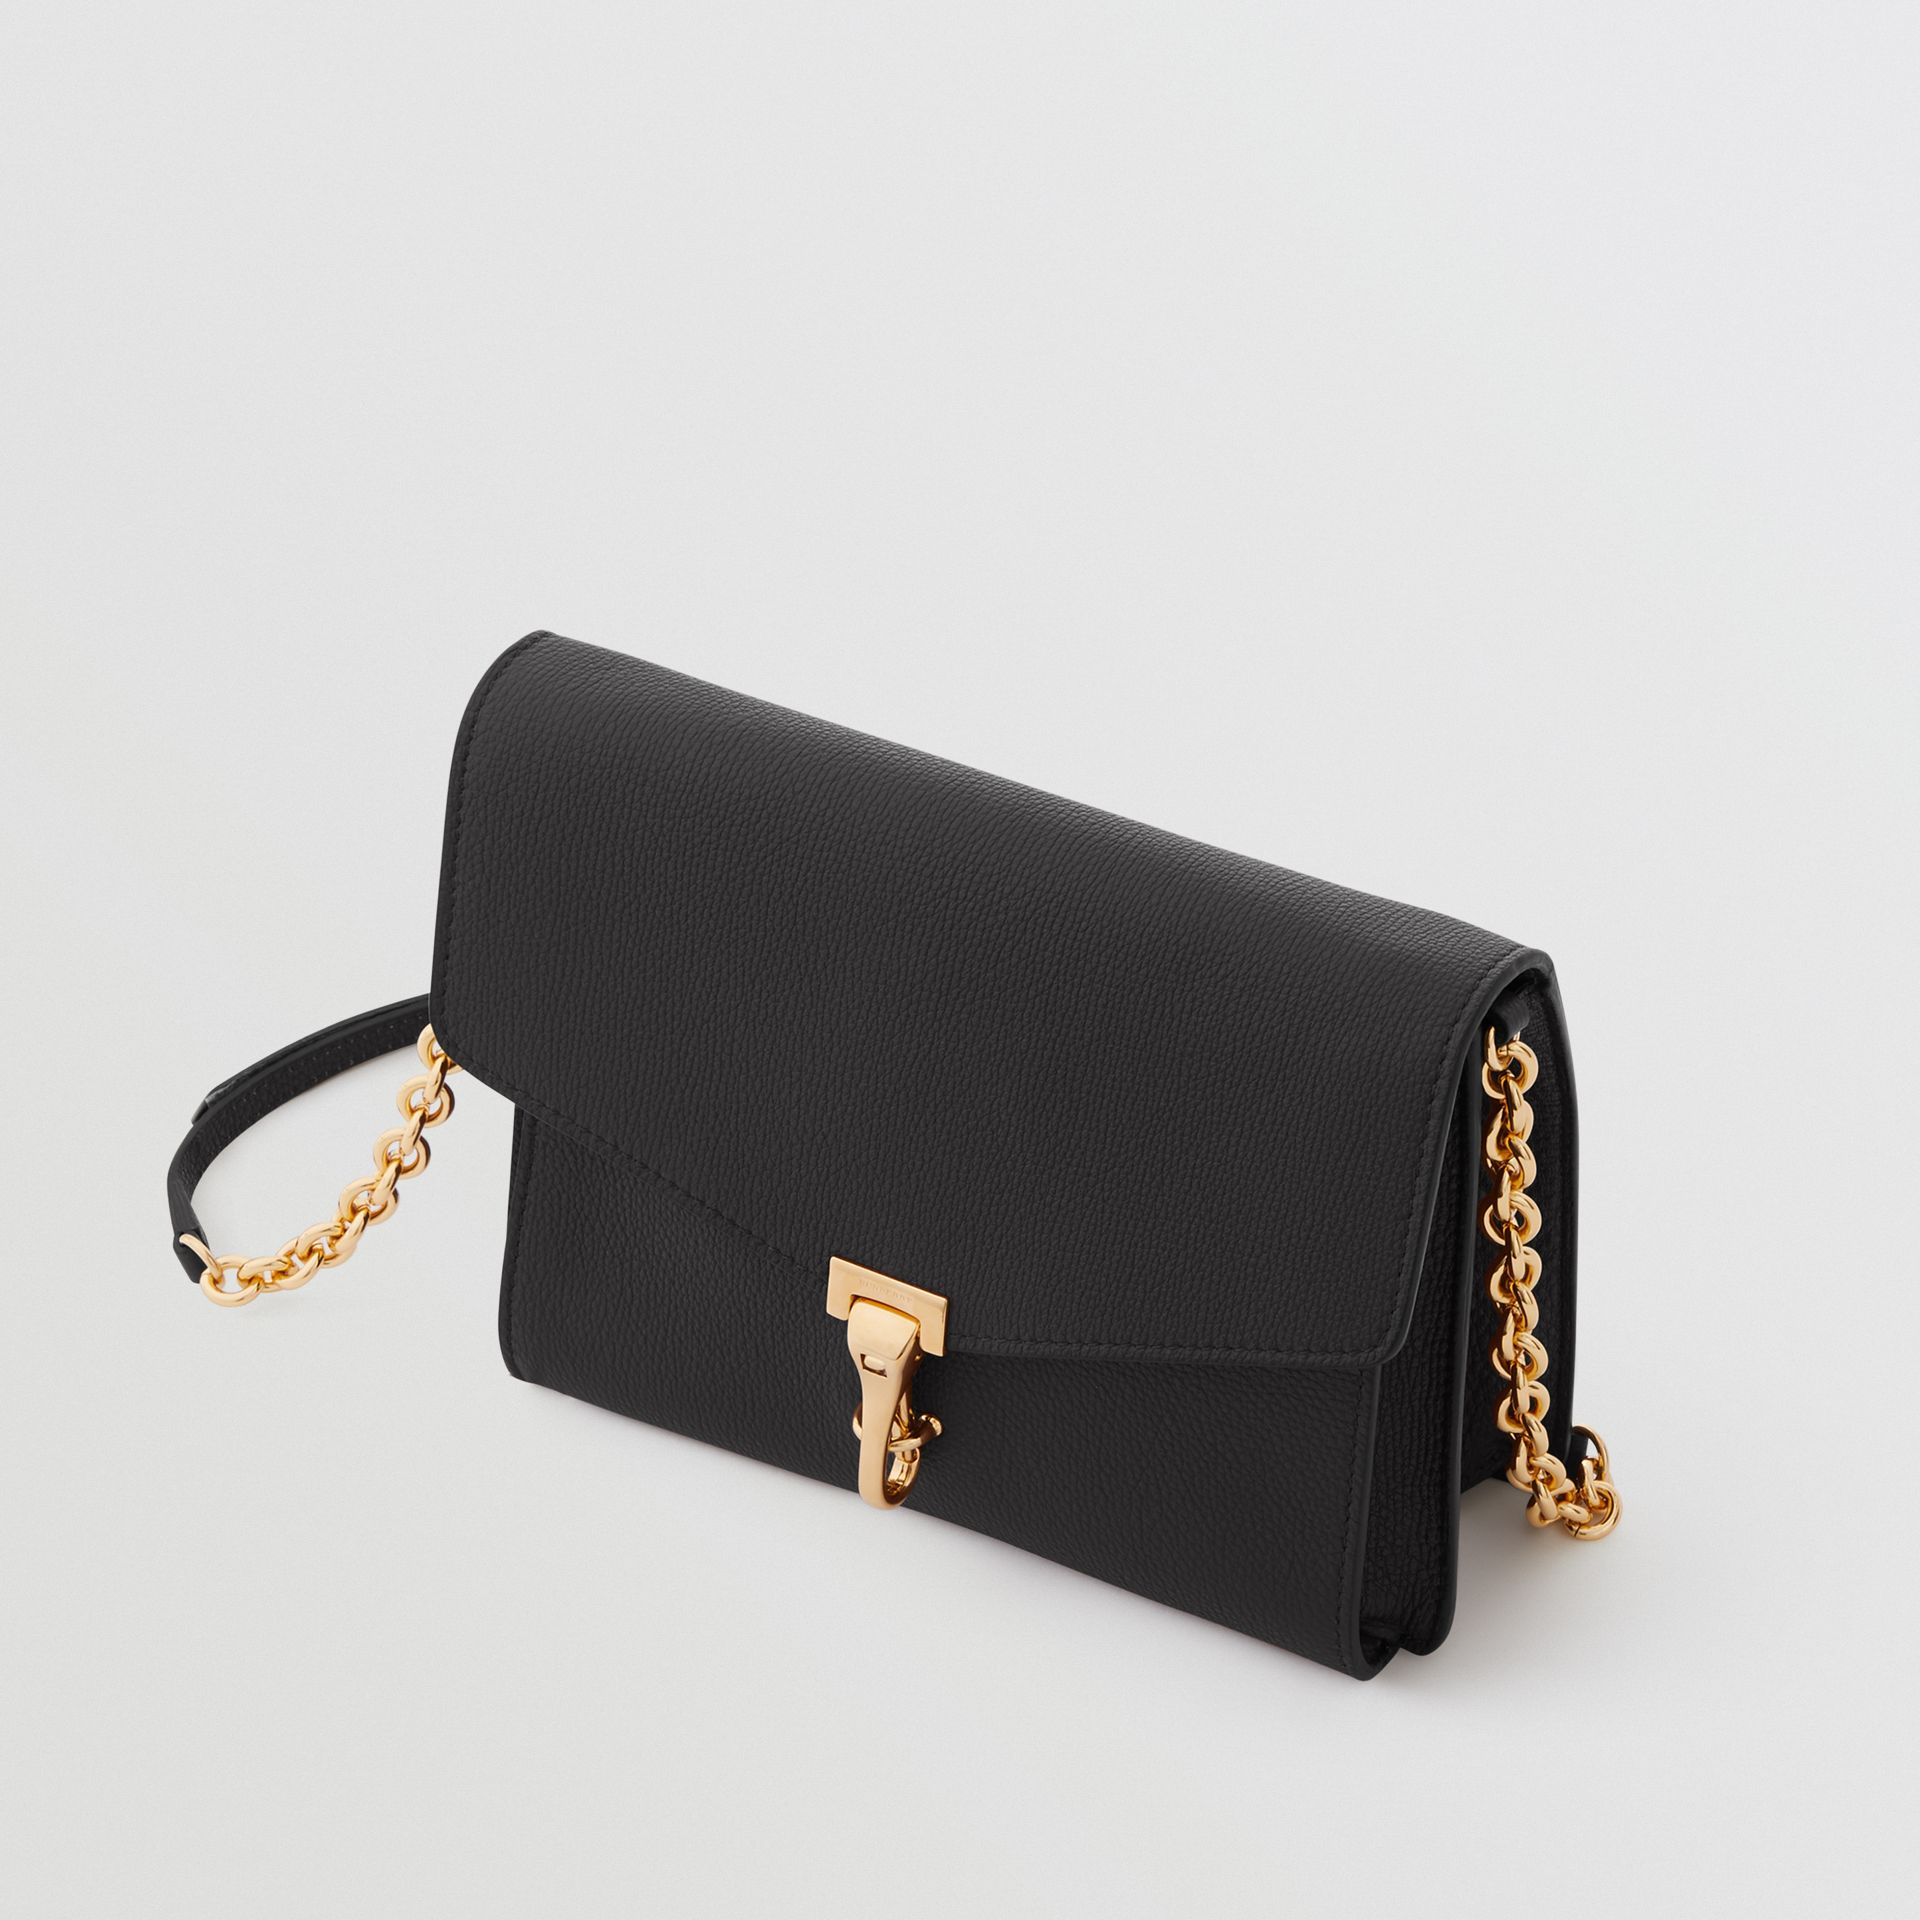 Small Leather Crossbody Bag in Black - Women | Burberry - gallery image 4